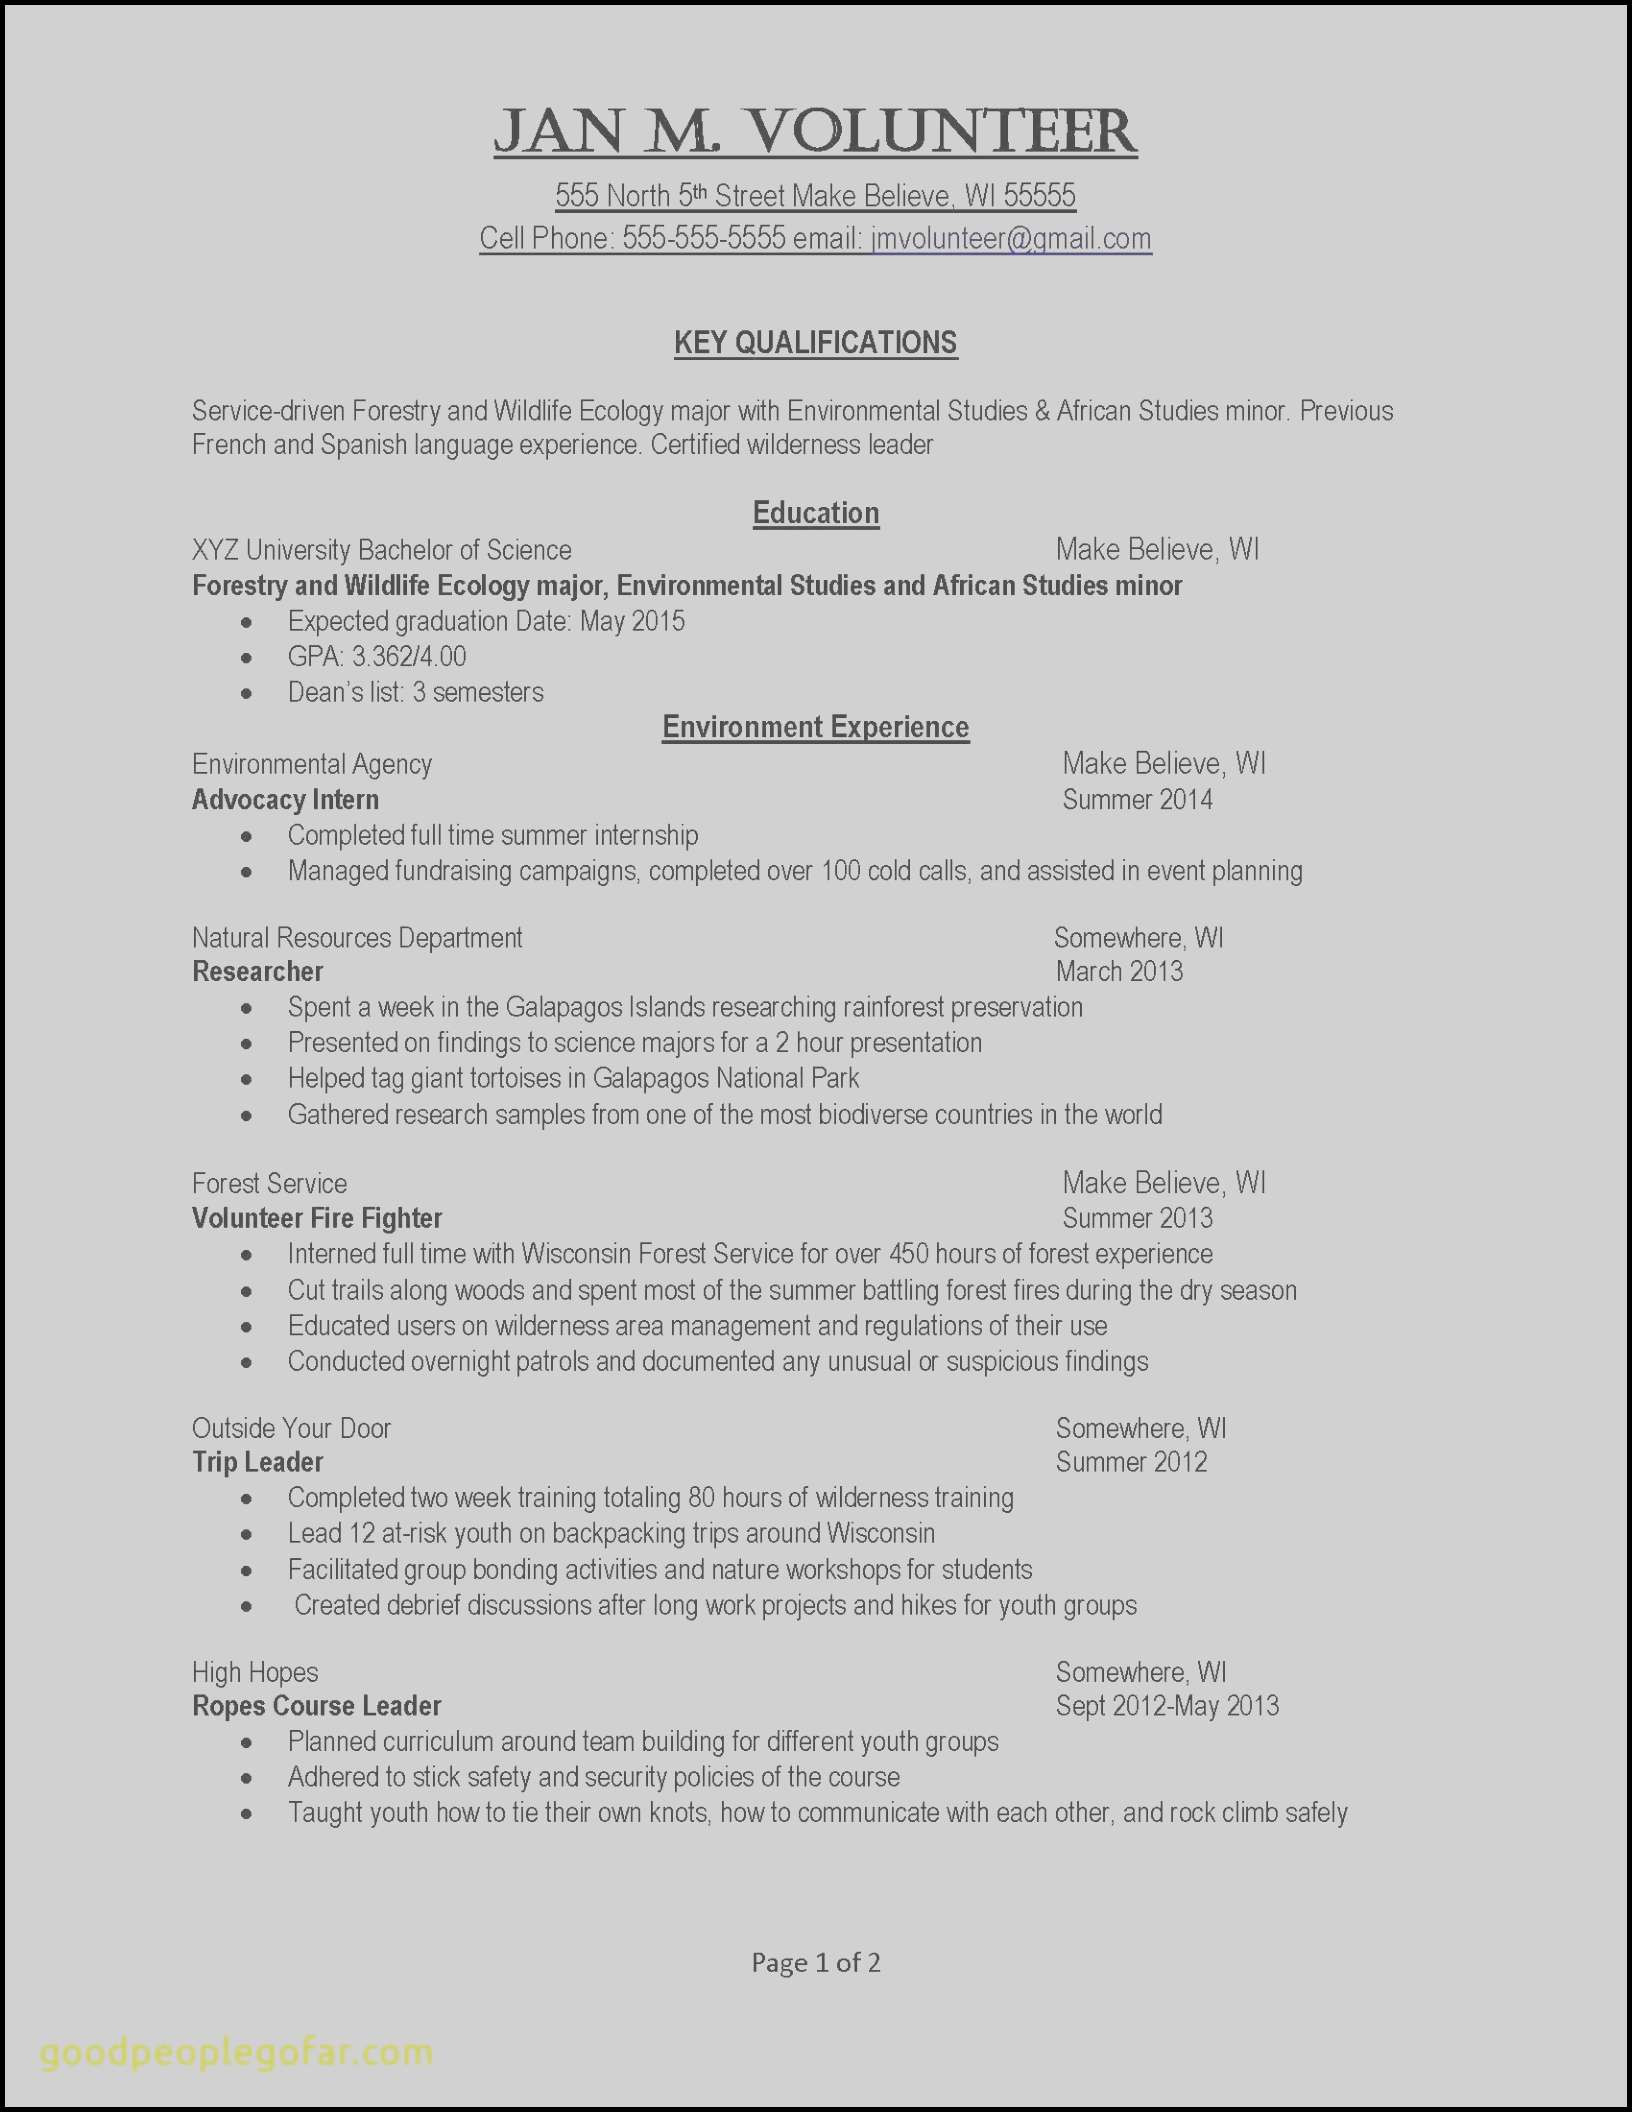 Create Your Own Resume - Resume Examples for Warehouse Position Recent Example Job Resume